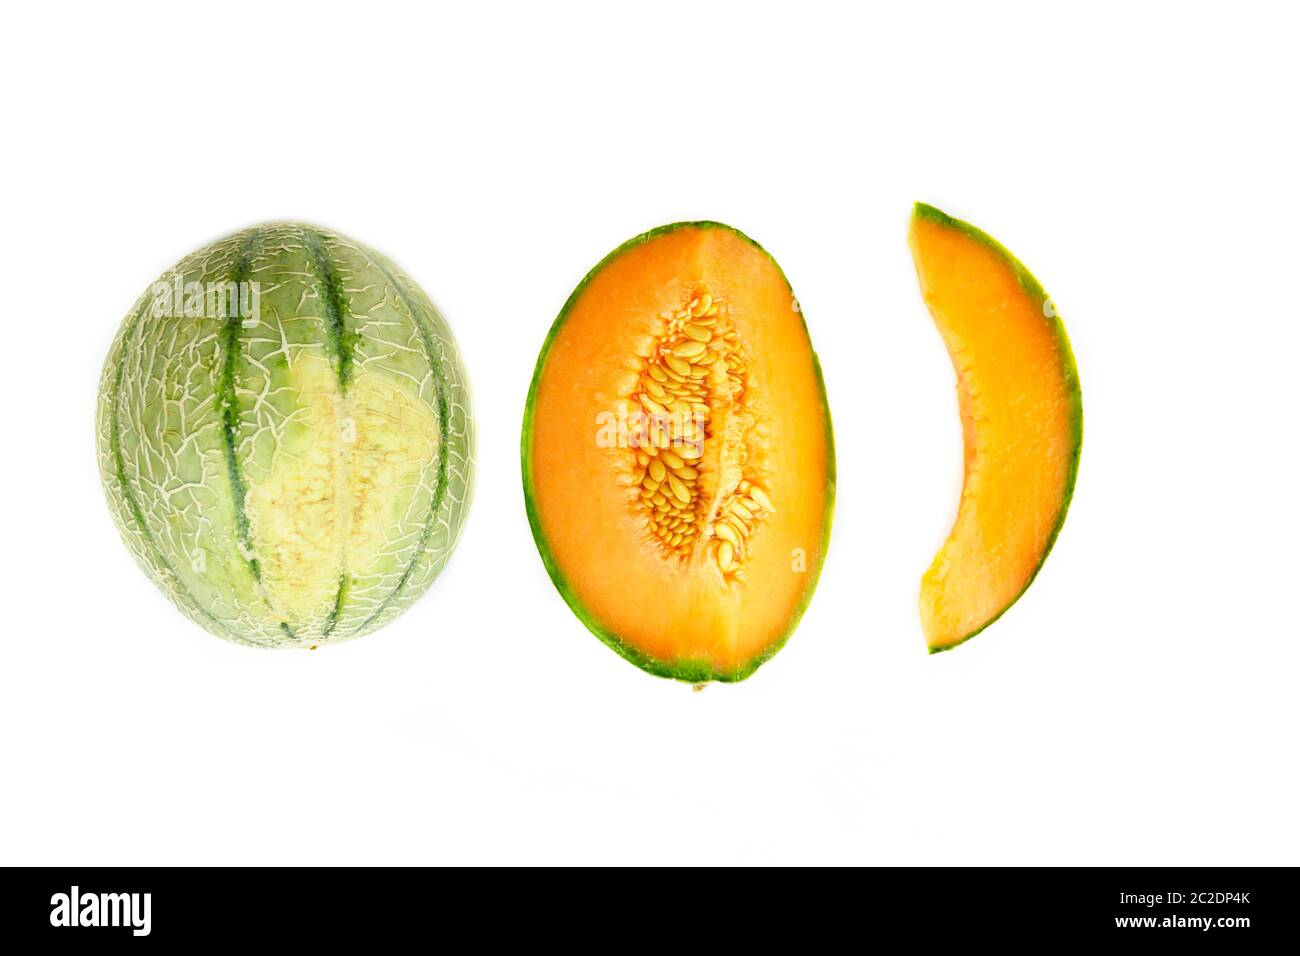 Healthy Eating And Dieting Food Concept Cantaloupe Fruit Composition And Design Element Top View Flat Lay Stock Photo Alamy Cantaloupe is a type of melon belonging to the cucurbitaceae family which also includes fruits and vegetables like is cantaloupe good for you? alamy